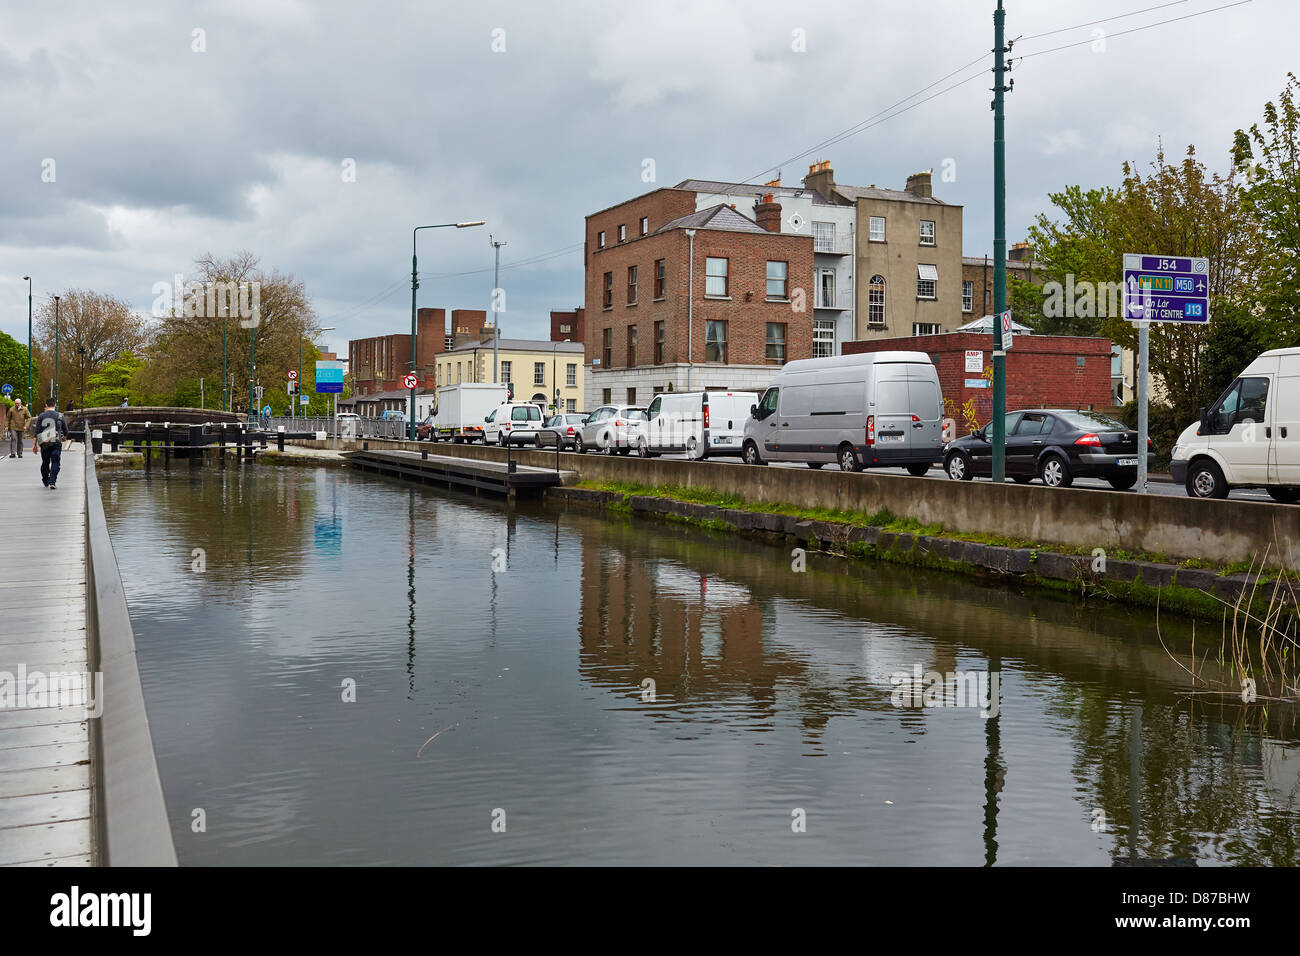 The Grand Canal Dublin showing traffic queuing along Canal Road on the way into the city centre. - Stock Image